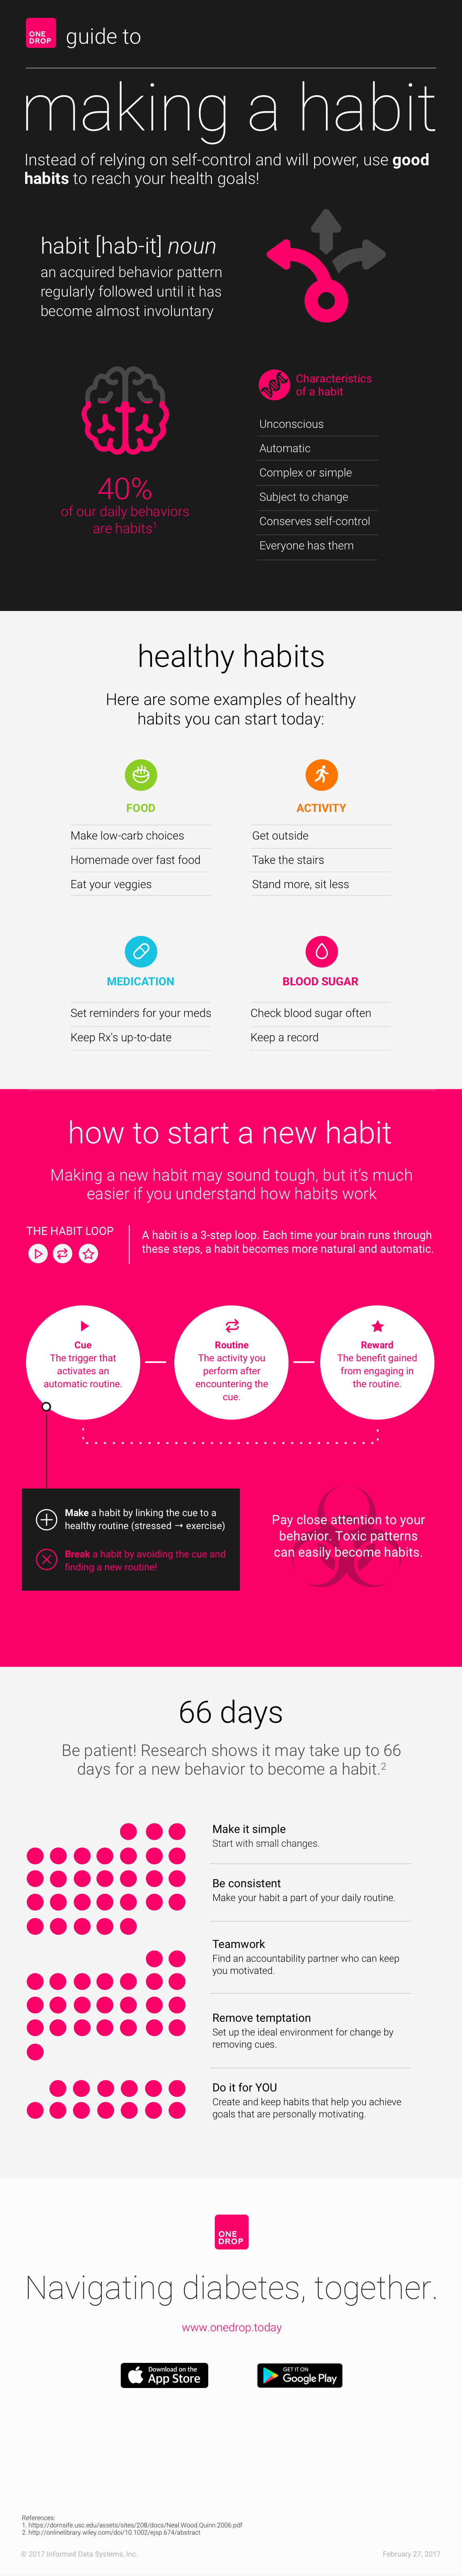 How To Start New Habits And Make Them Stick